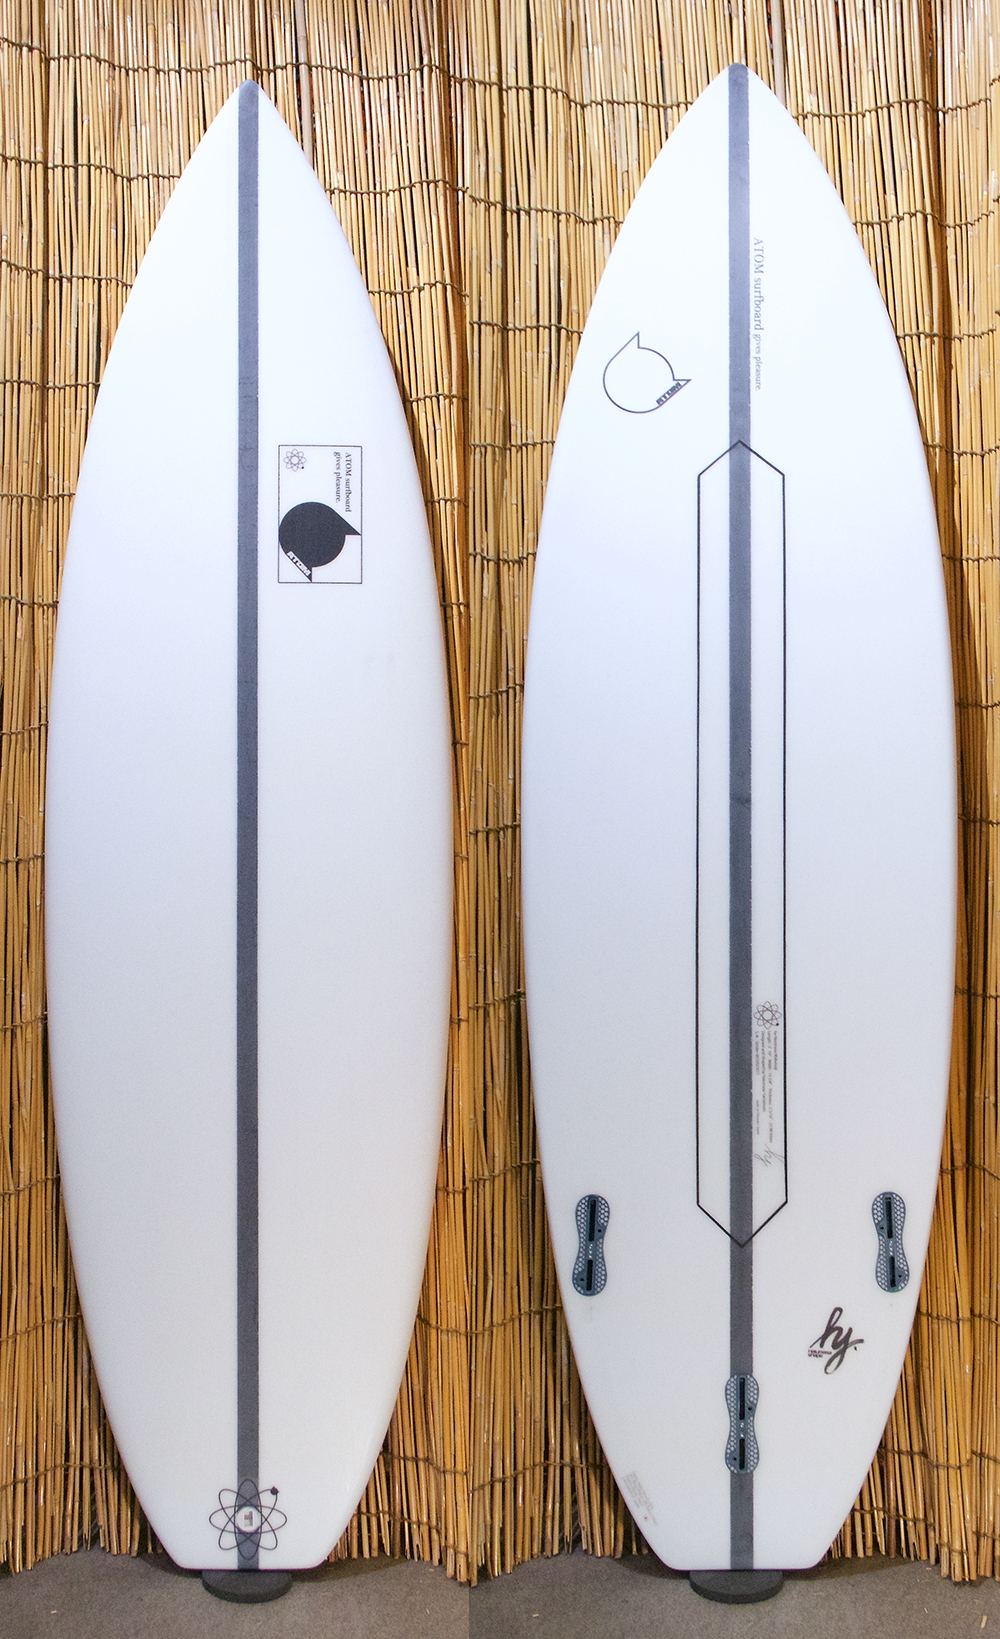 ATOM Surfboard Strider by ATOM Tech 2.0